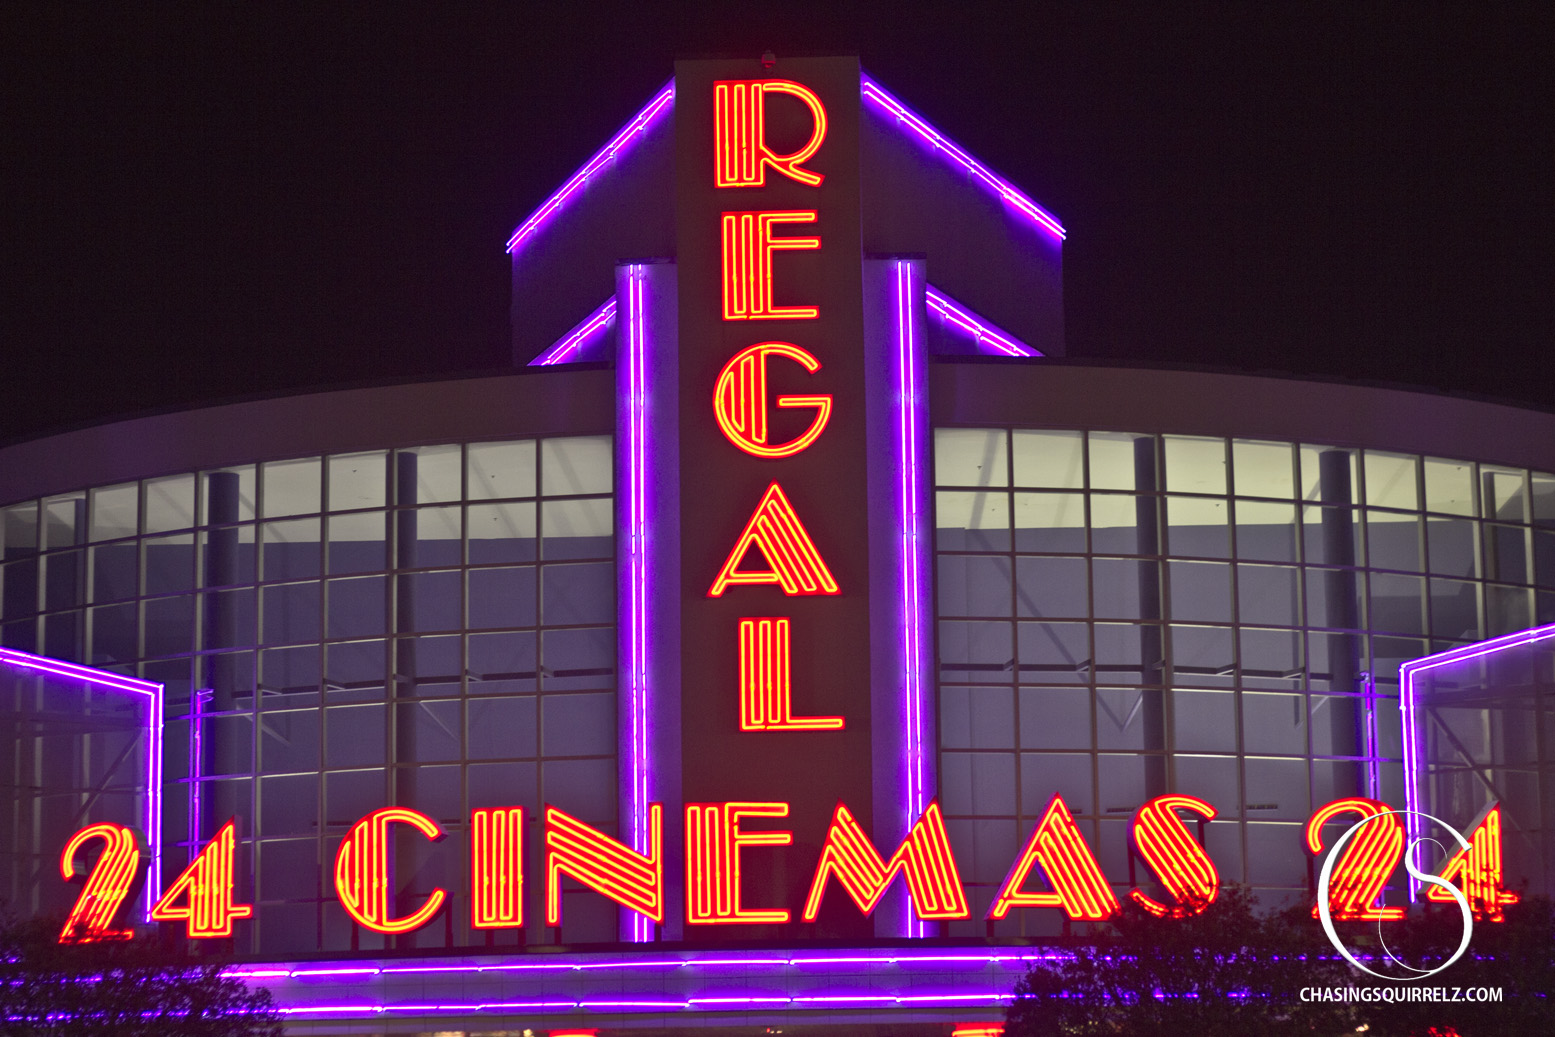 Atlanta, GA; Regal 24; Regal 24 in Atlanta, GA. About Search Results. About Search Results. YP - The Real Yellow Pages SM - helps you find the right local businesses to meet your specific needs. Search results are sorted by a combination of factors to give you a set of choices in response to your search criteria. These factors are similar to.